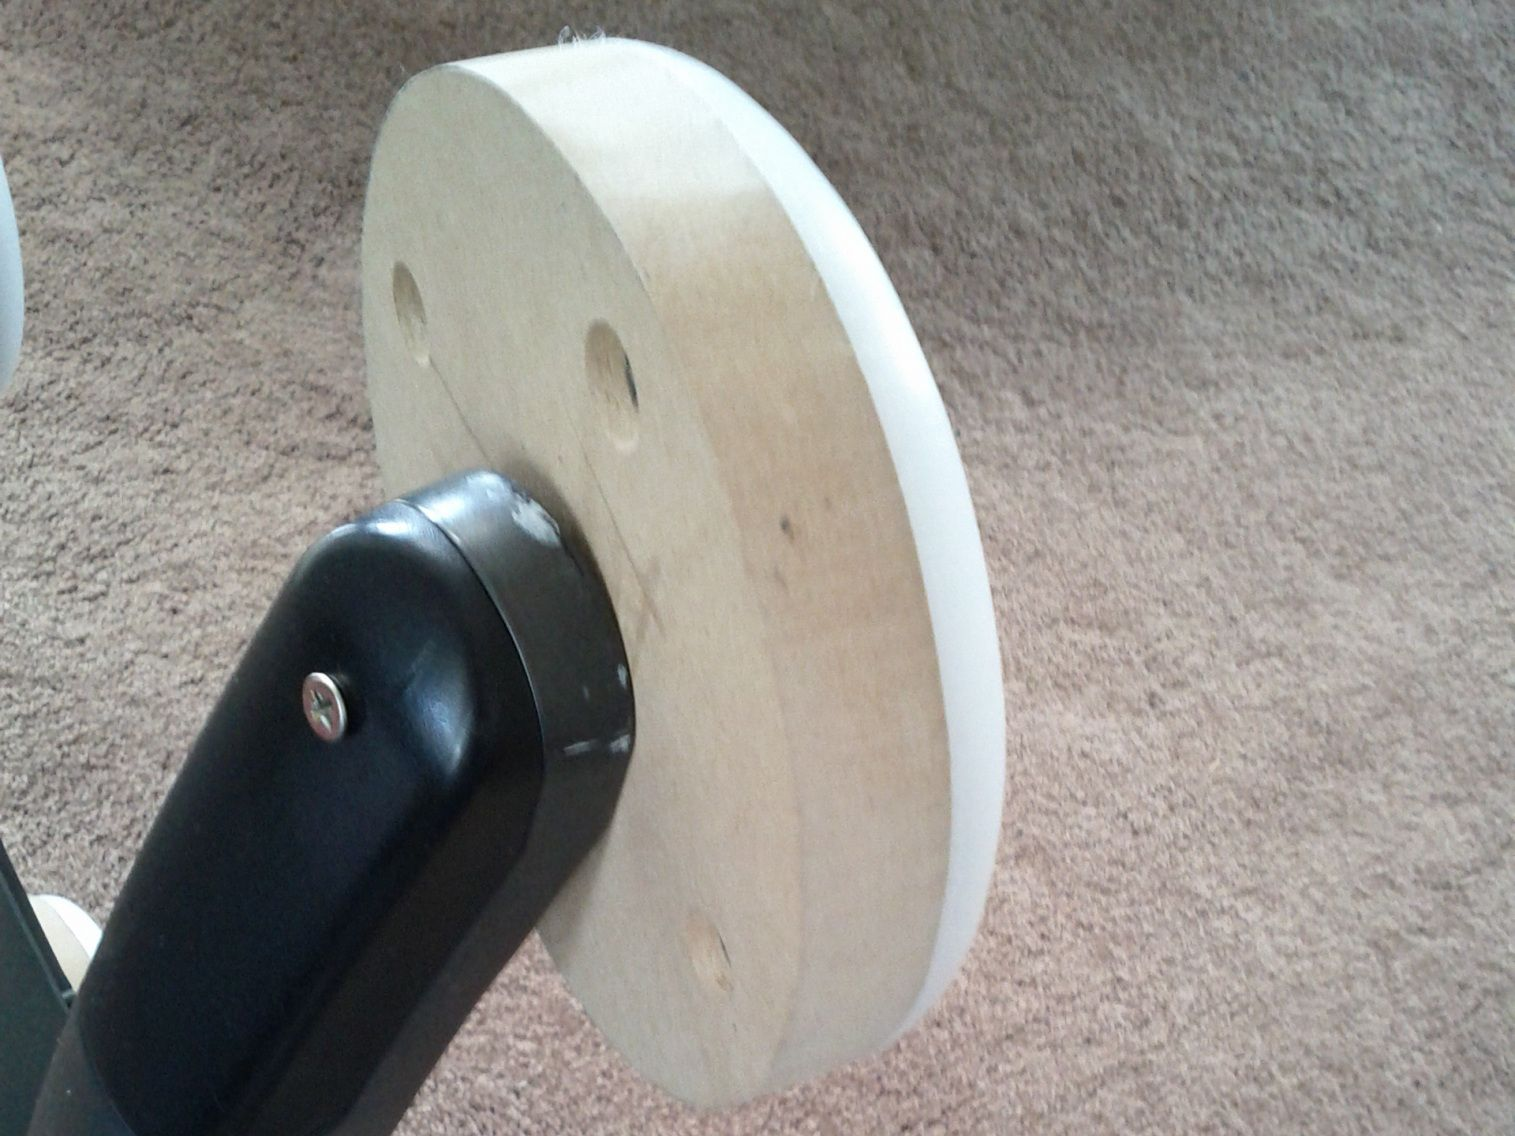 Office Chair Casters For Carpet Custom Home Furniture Check More At Http Www Drjamesghoodblog